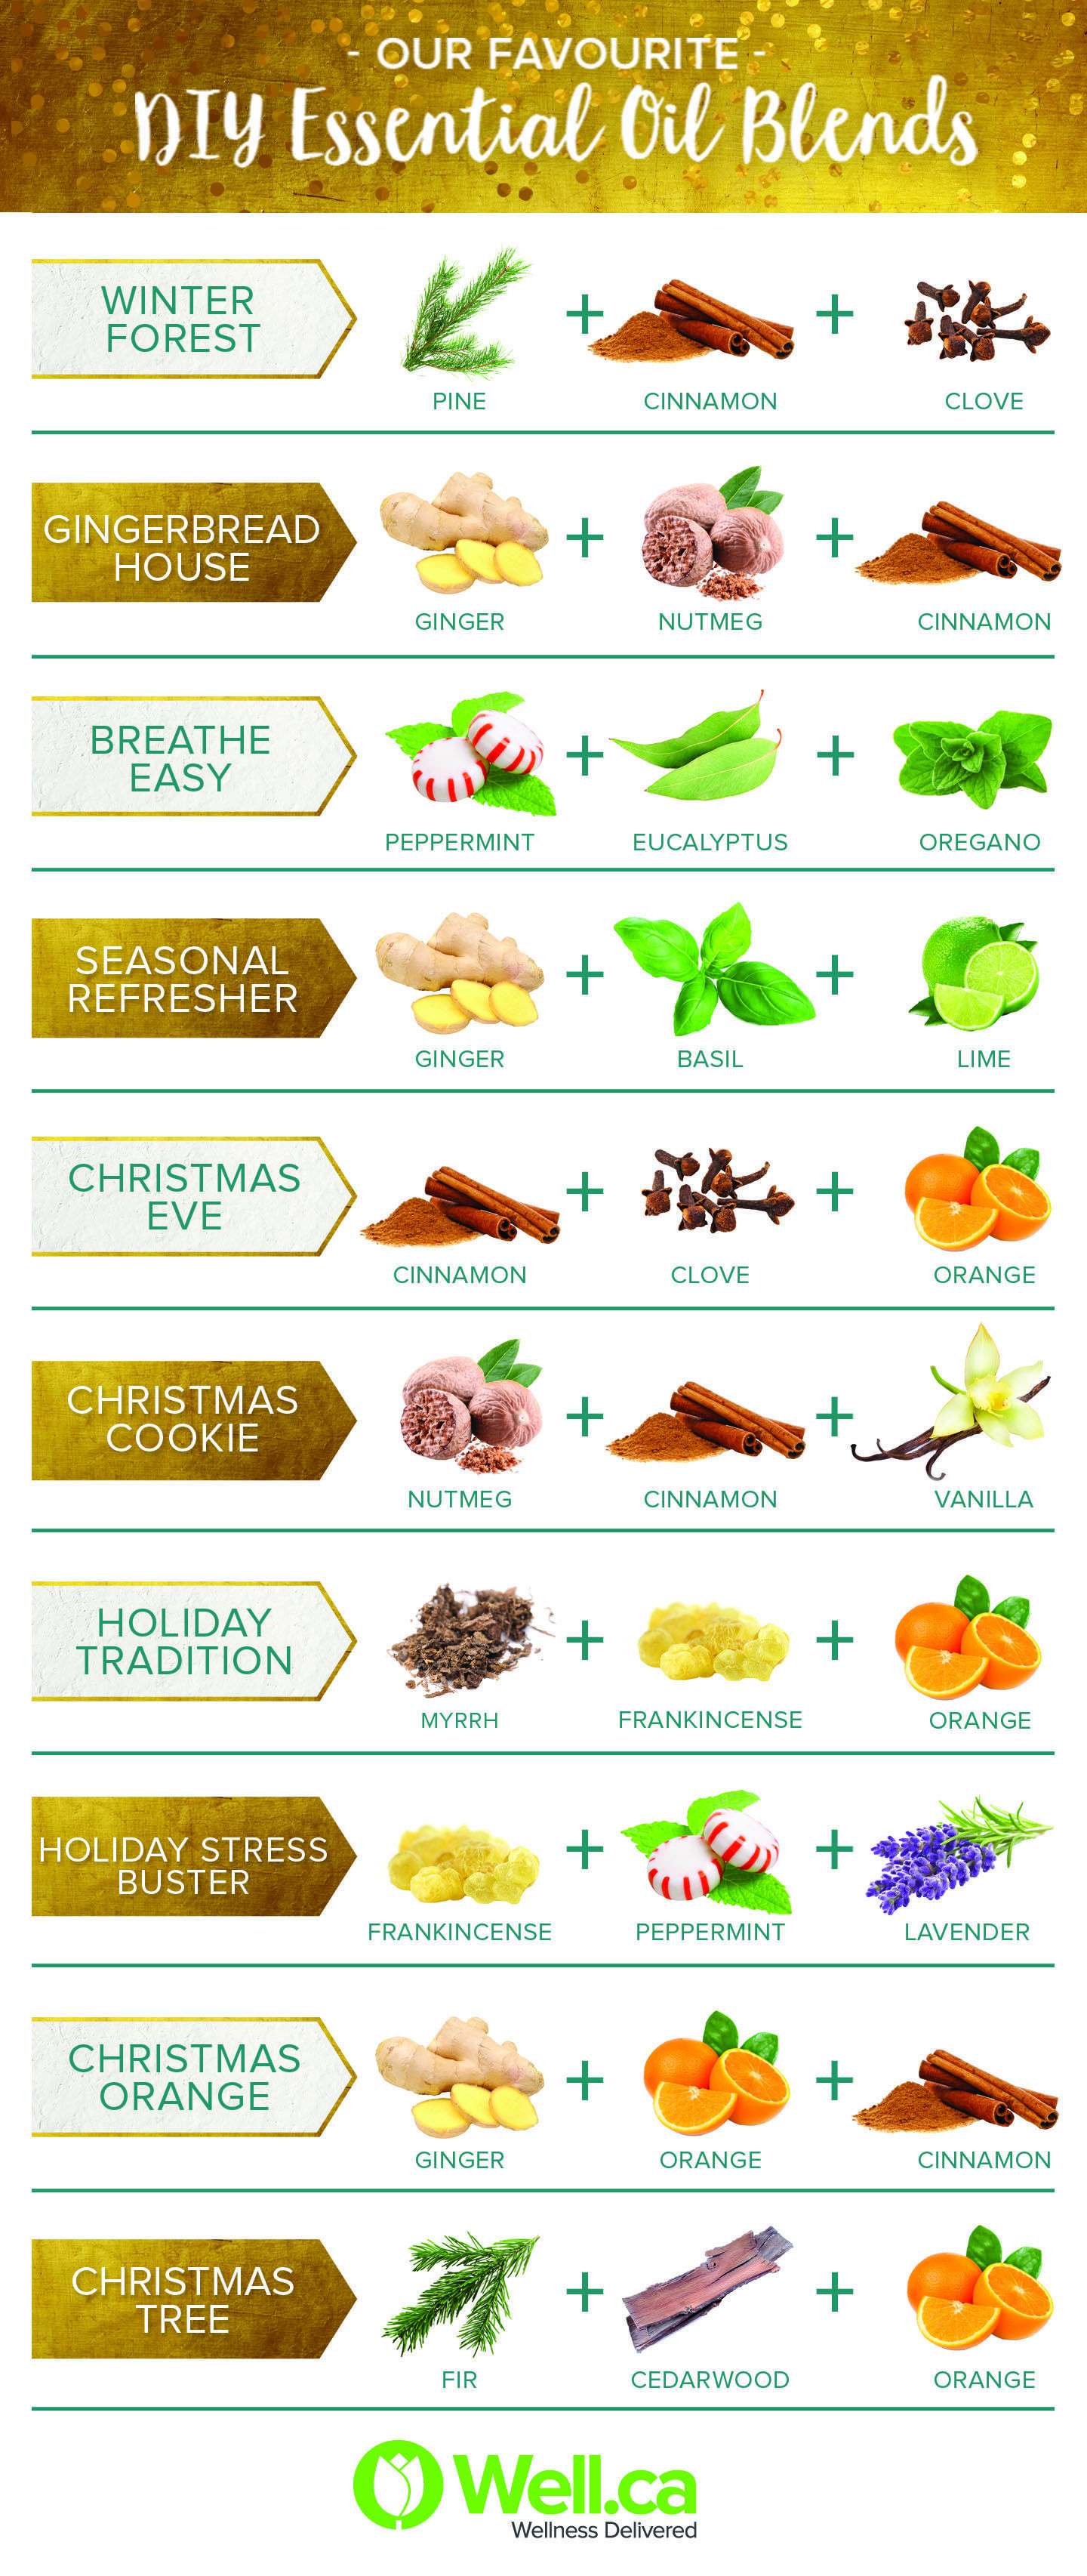 Check Out Our Favourite Holiday Diffuser Blends Over On The Well Blog